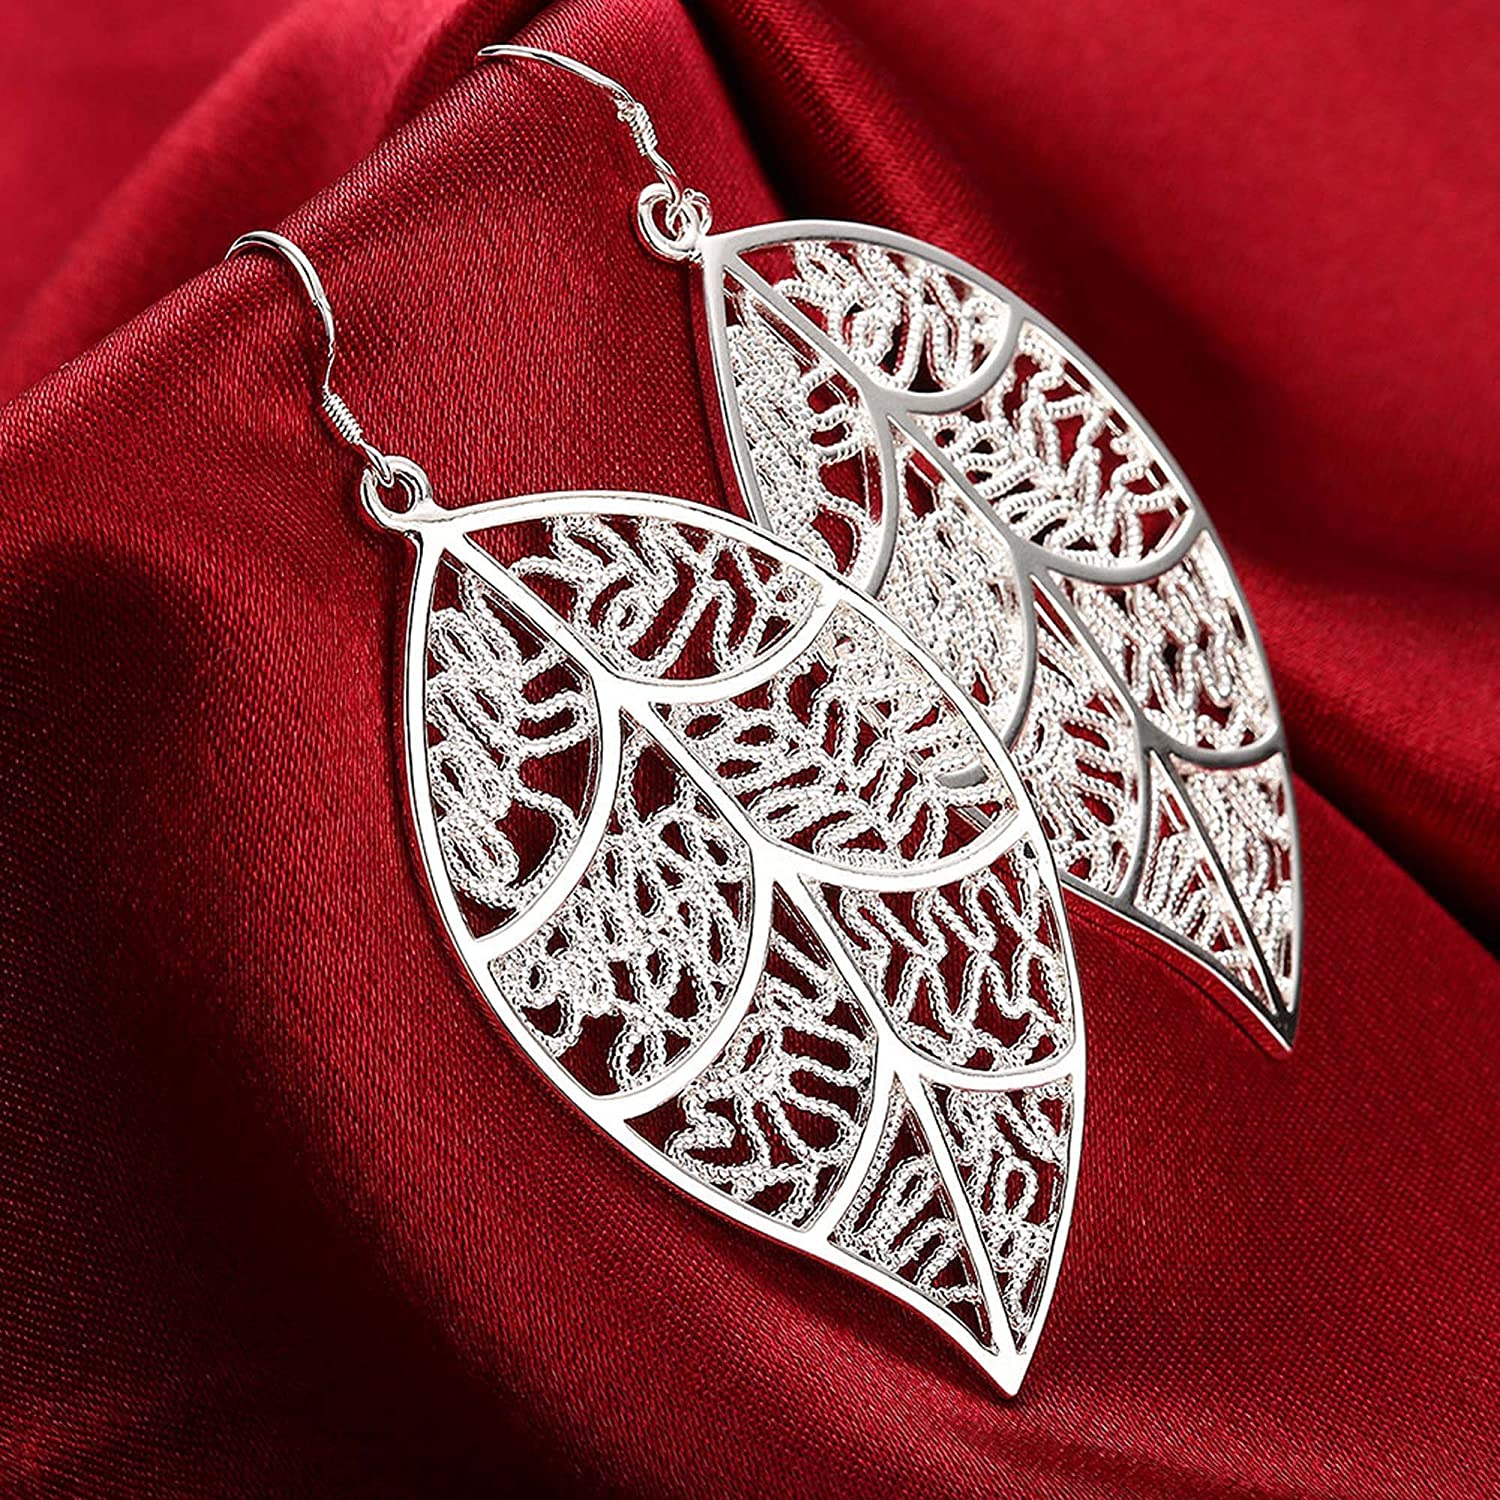 PMANY 925 Sterling Silver Plated Back Earrings,Textured Lace Leaf Dangle Earrings,for Women Girls(White/1 Pair)